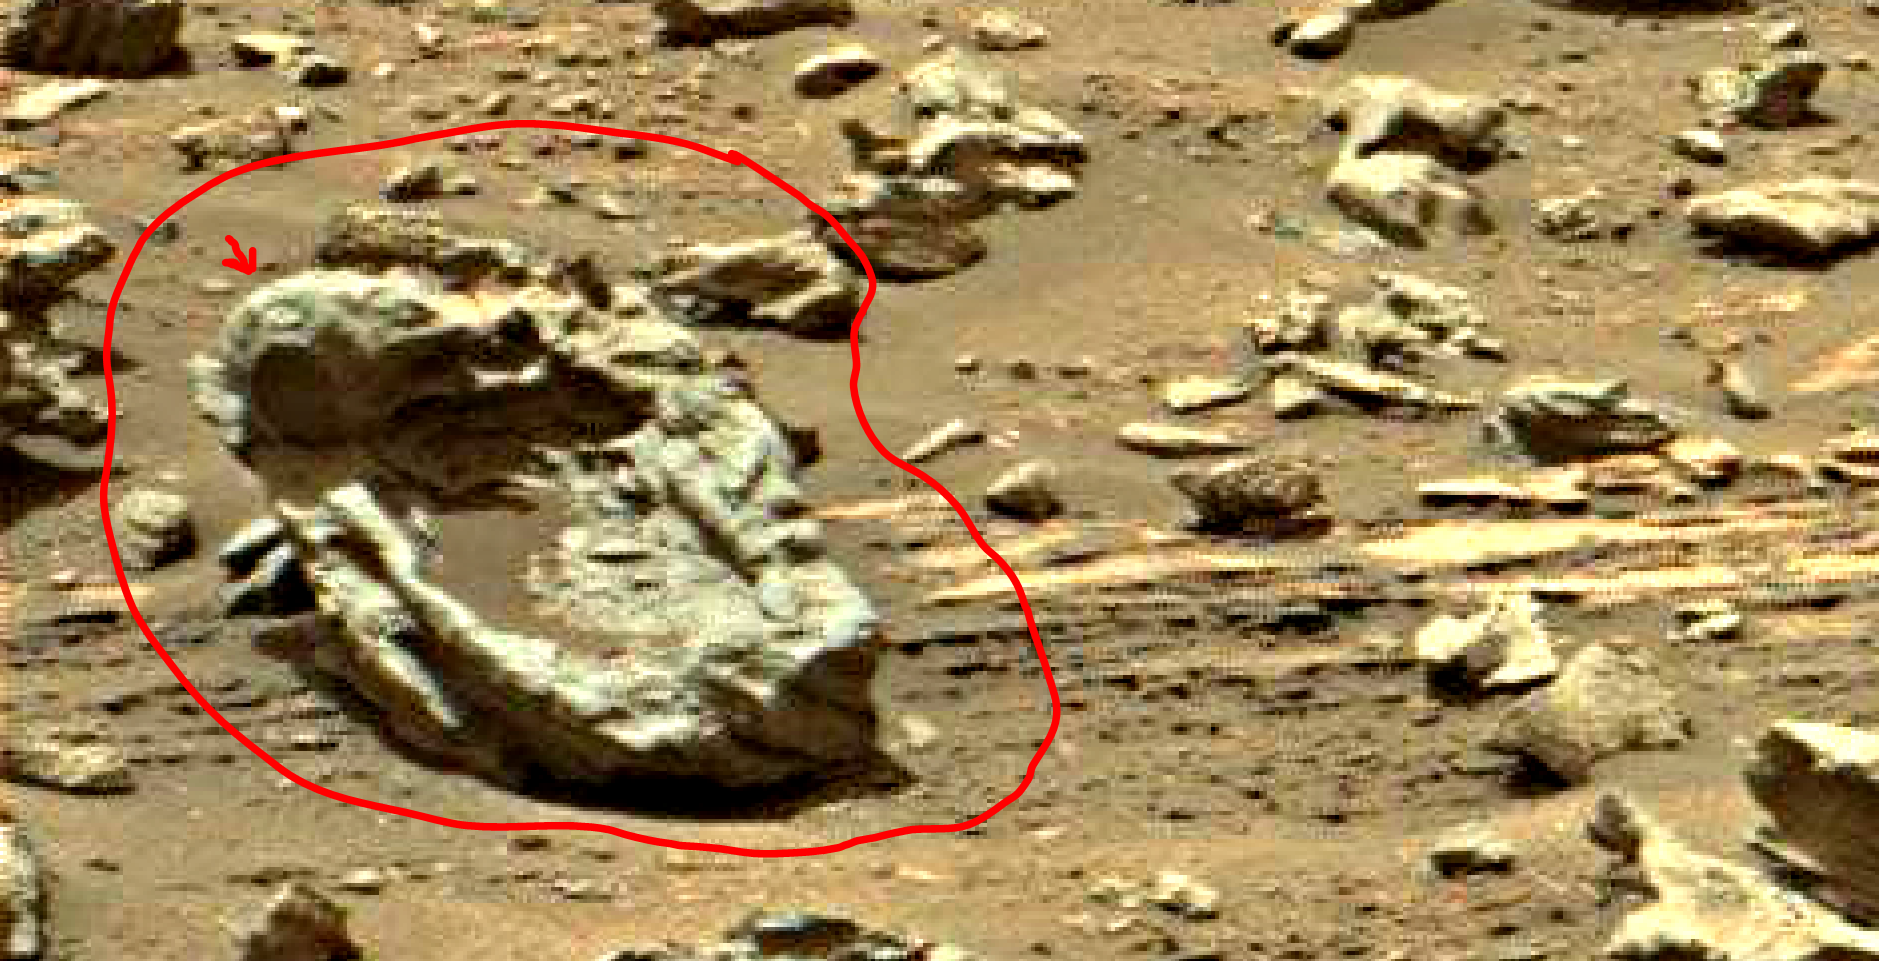 mars-sol-1450-anomaly-artifacts-22-was-life-on-mars